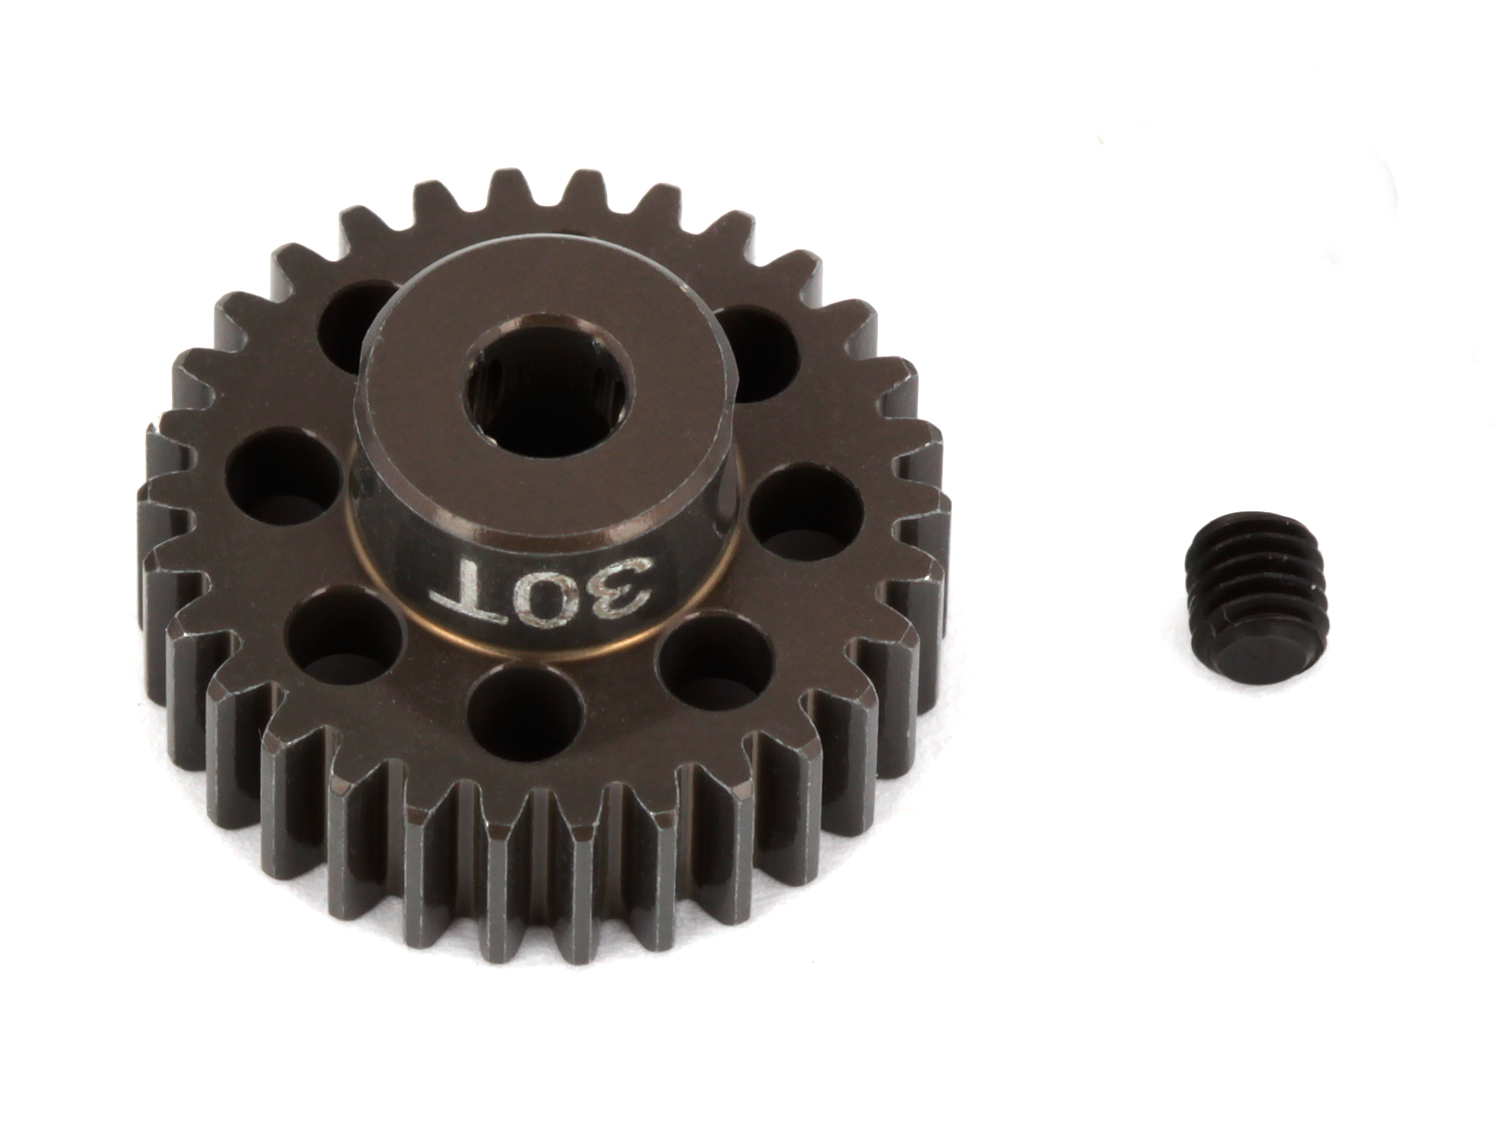 ASSOCIATED 1348 FT Aluminum Pinion Gear, 30T 48P